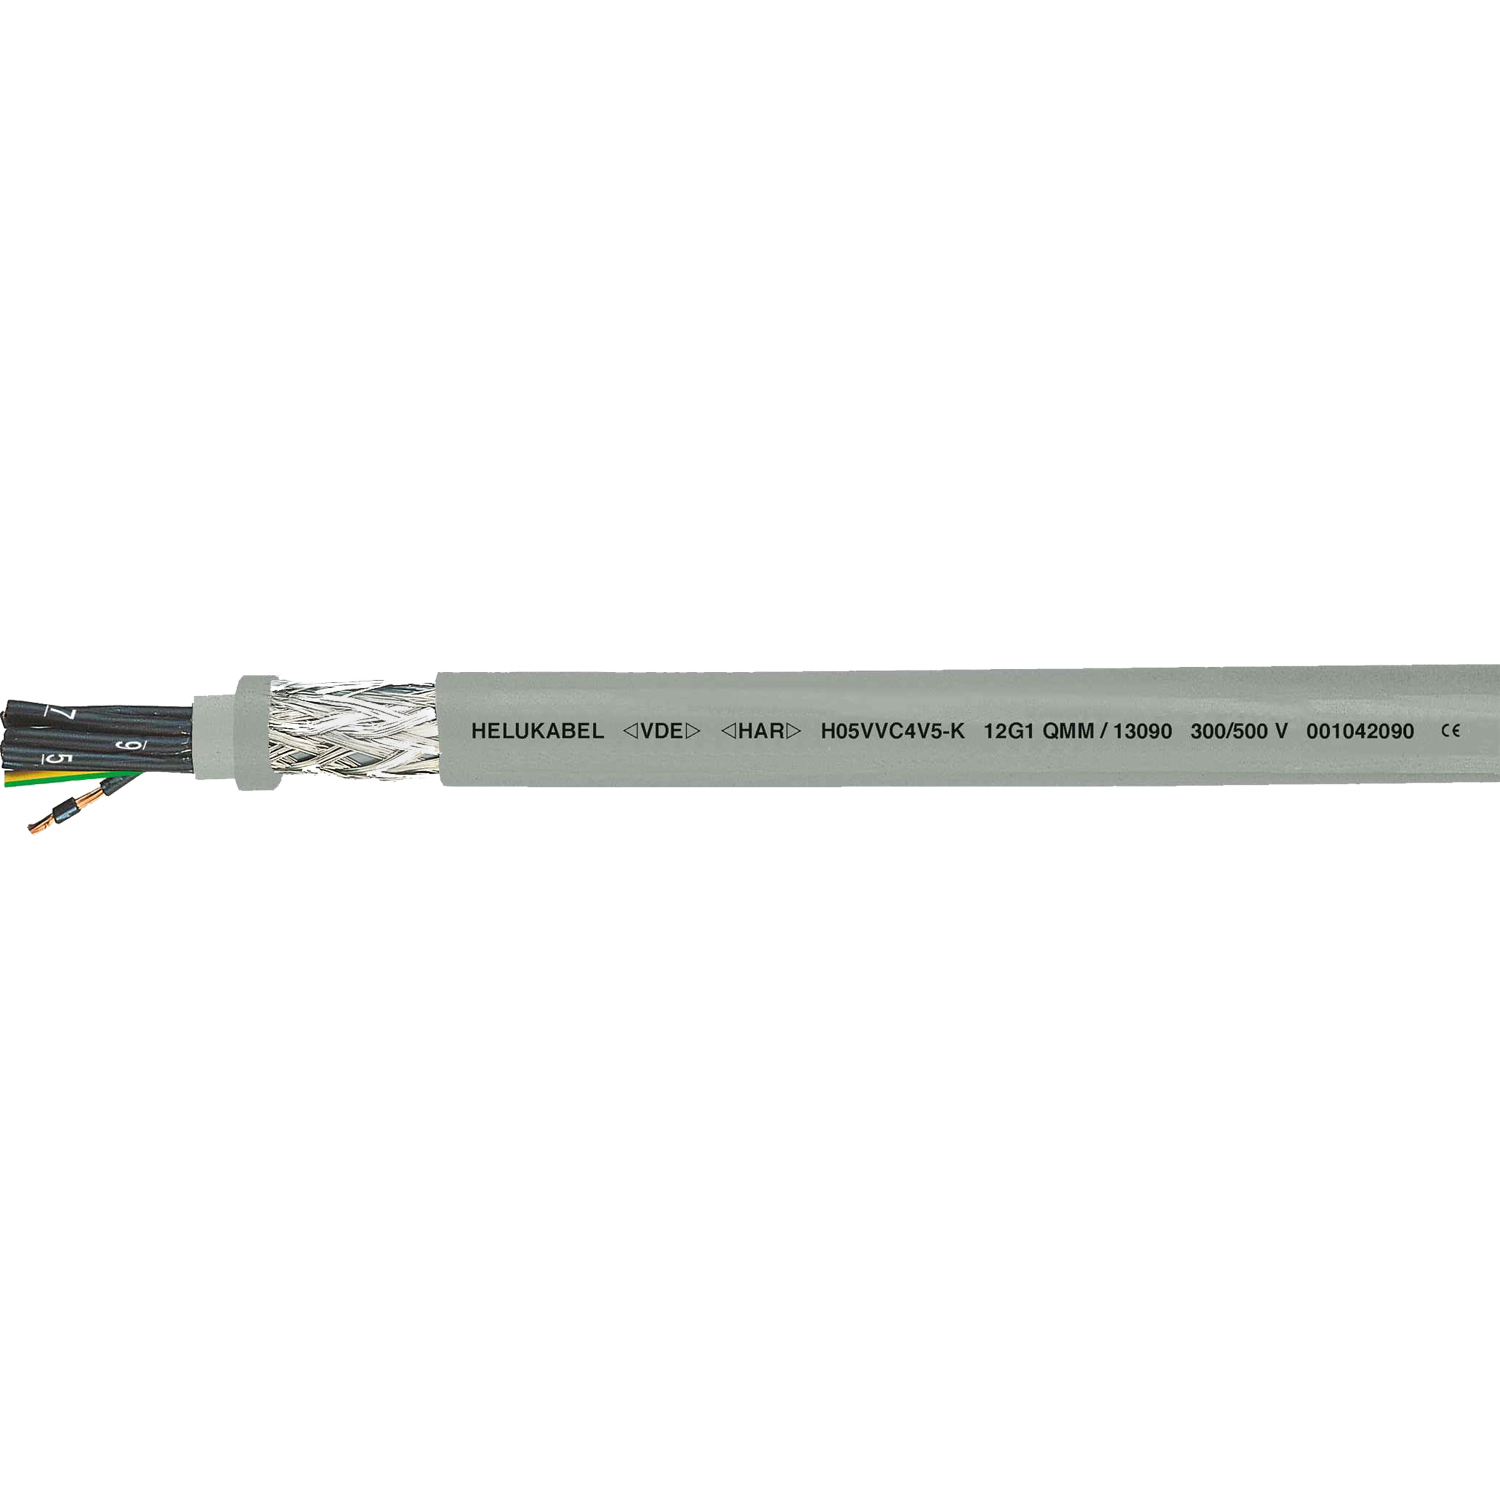 Control Cable PVC screened H05VVC4V5 K